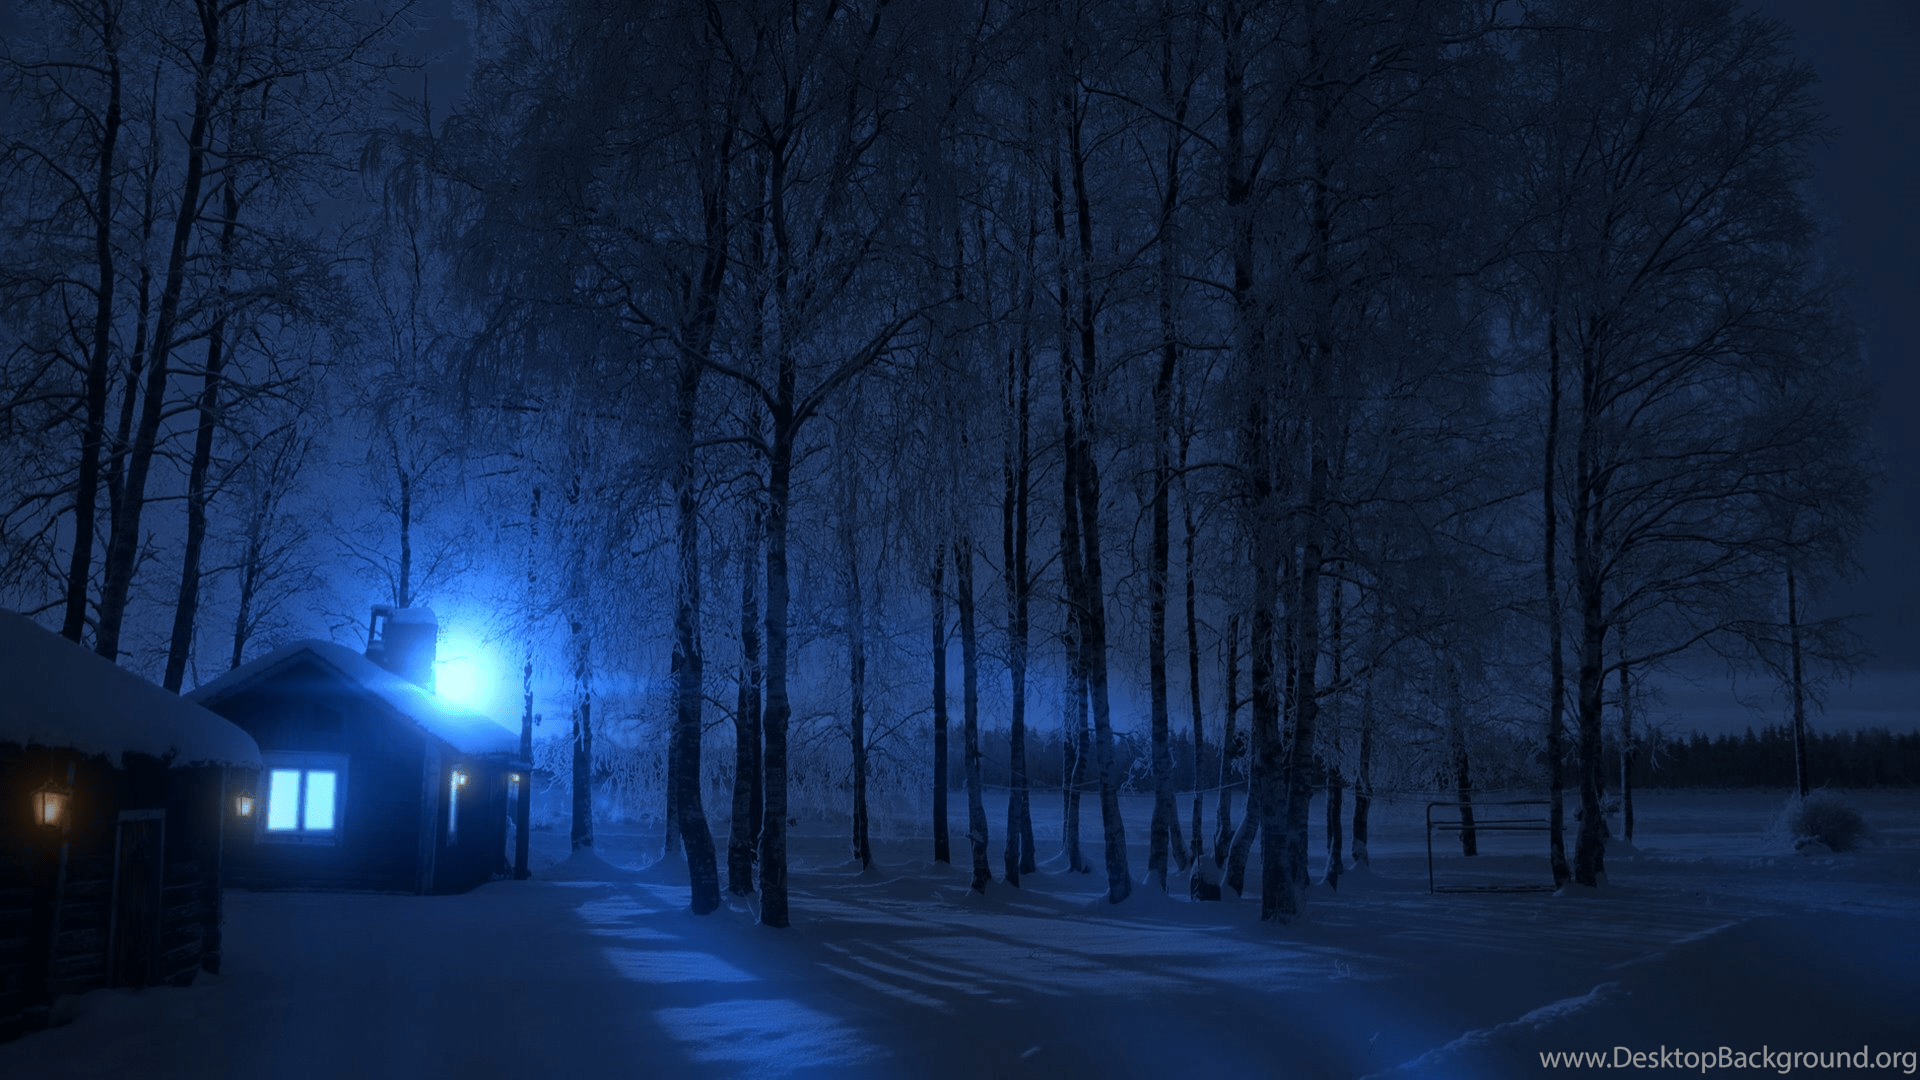 Christmas Scene Wallpaper For Iphone Cold Winter Night Wallpapers Hd By Guncapmv On